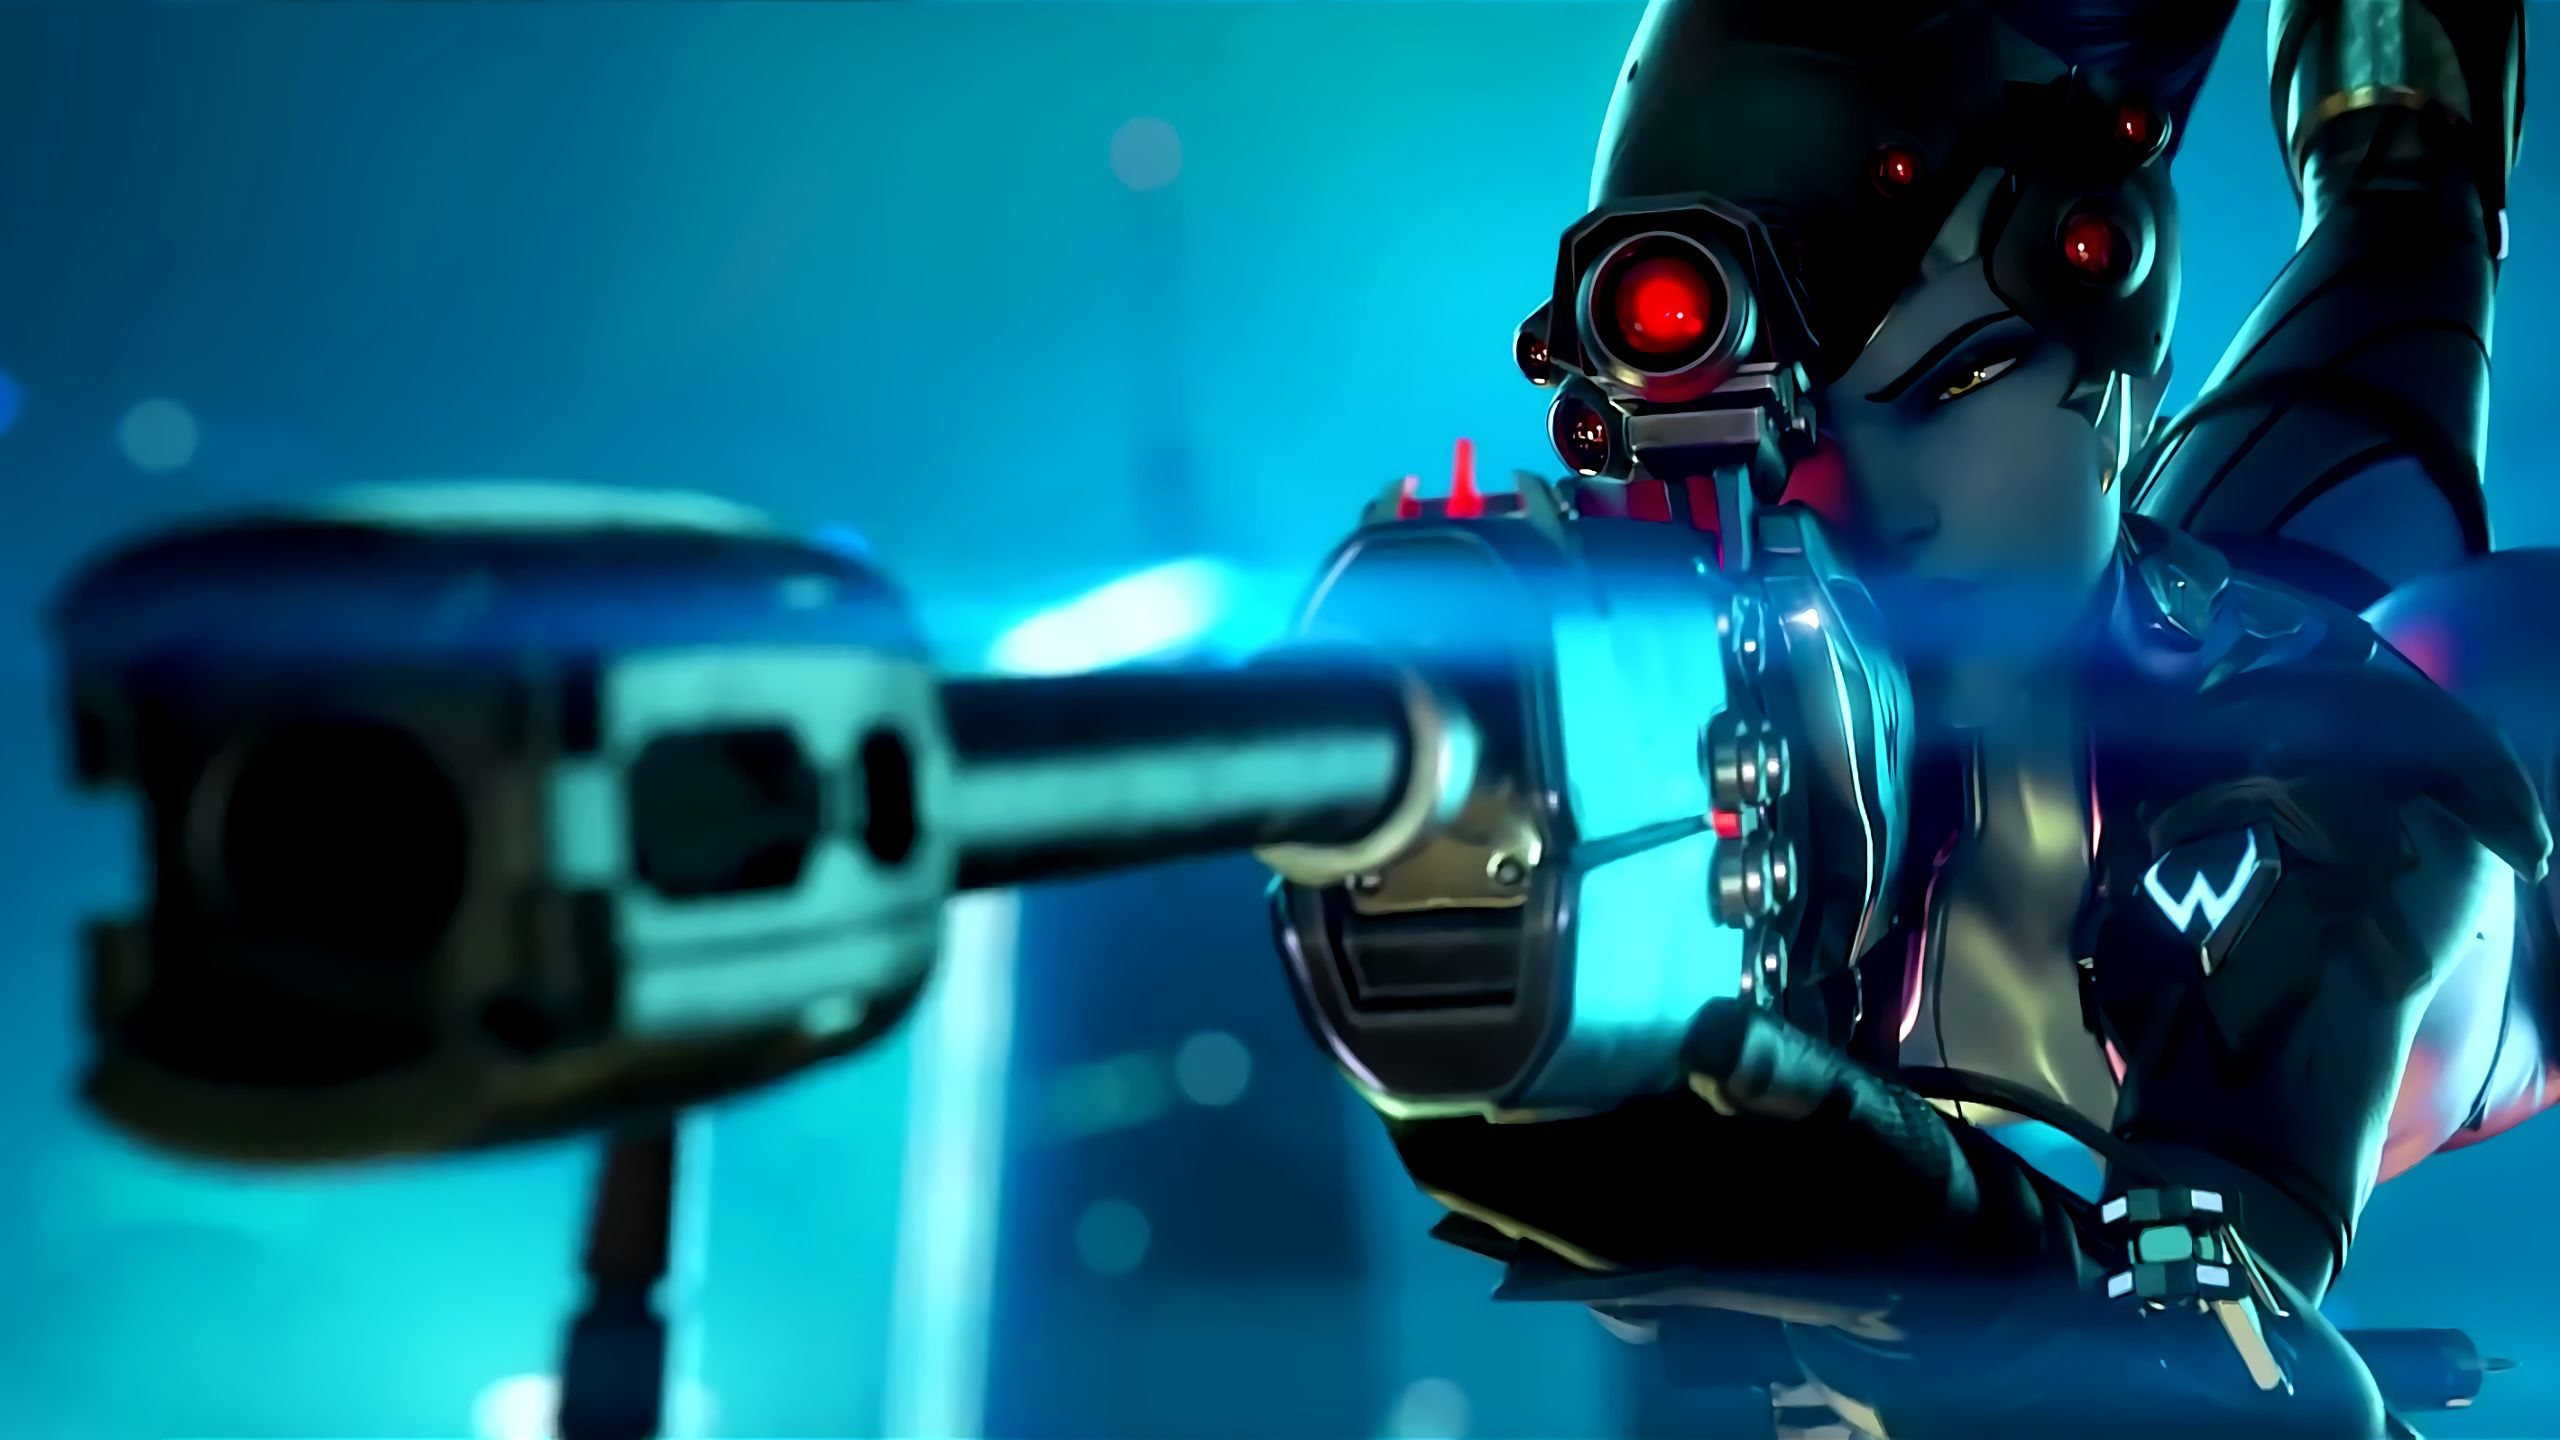 Pin By Deanna Bradshaw On Anime Misc Overwatch Wallpapers Overwatch Widowmaker Widowmaker